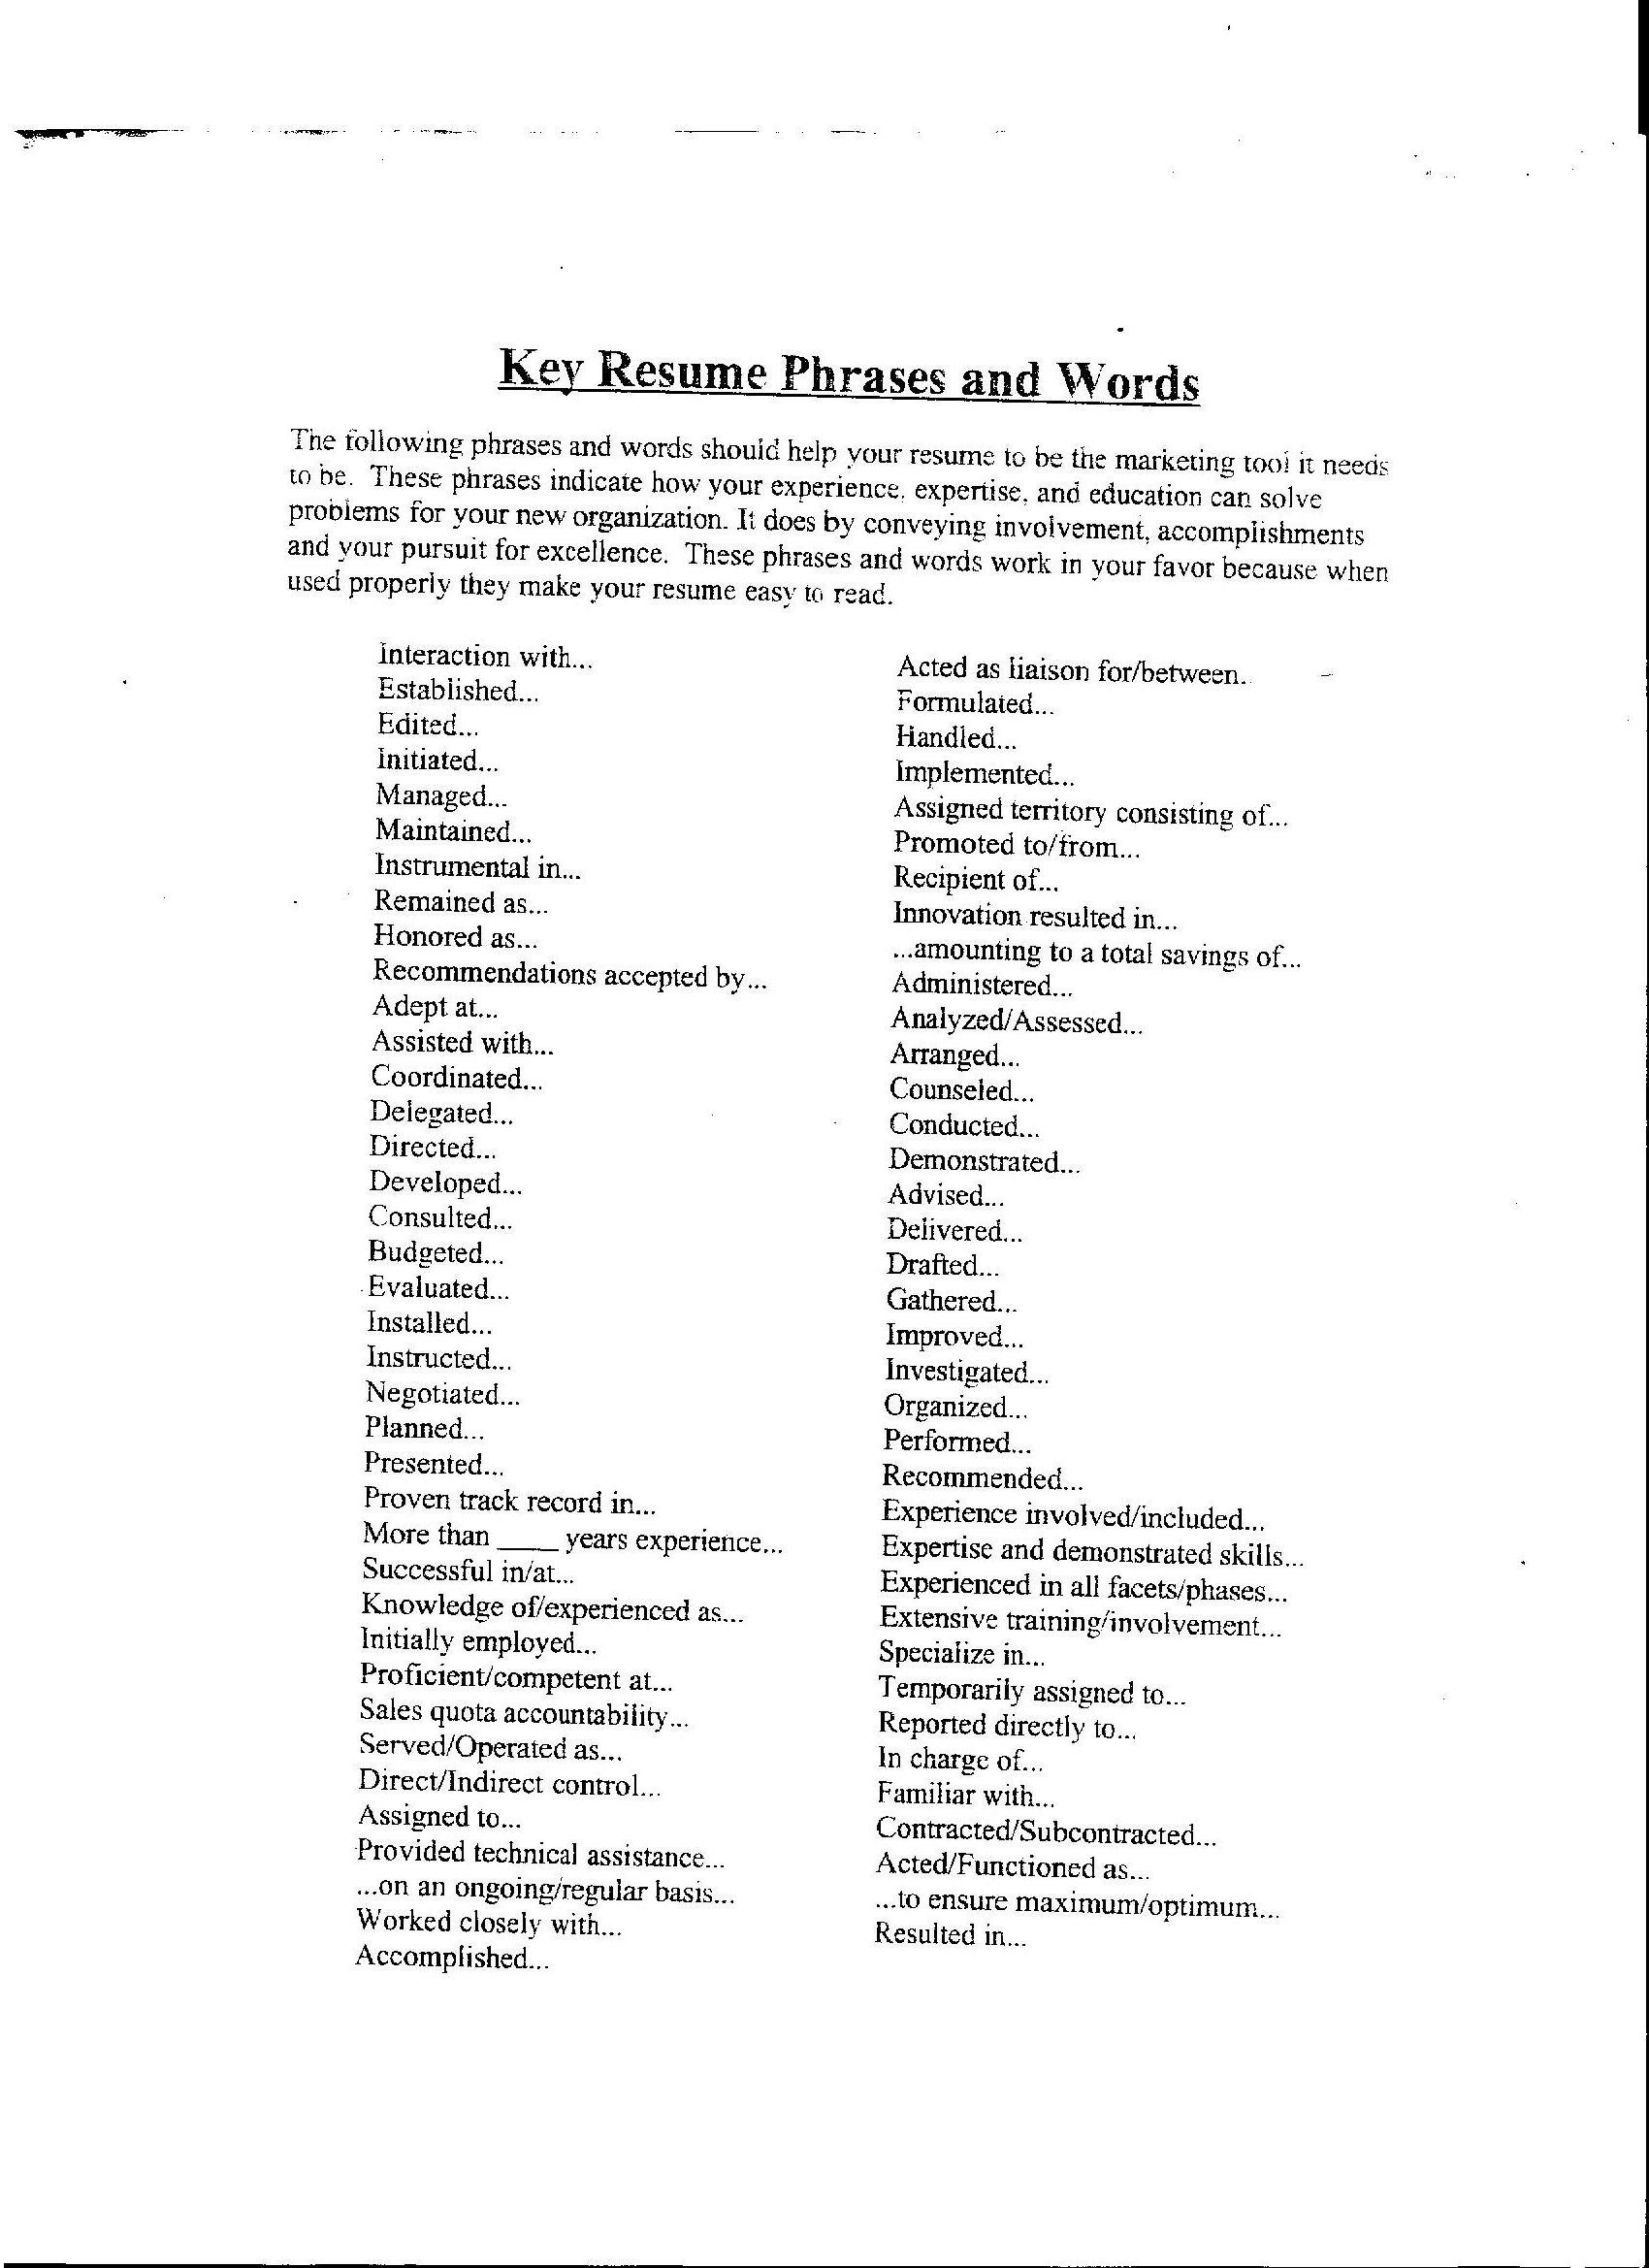 resume Best Words To Use On A Resume cover letter buzz words ninja turtletechrepairs co words